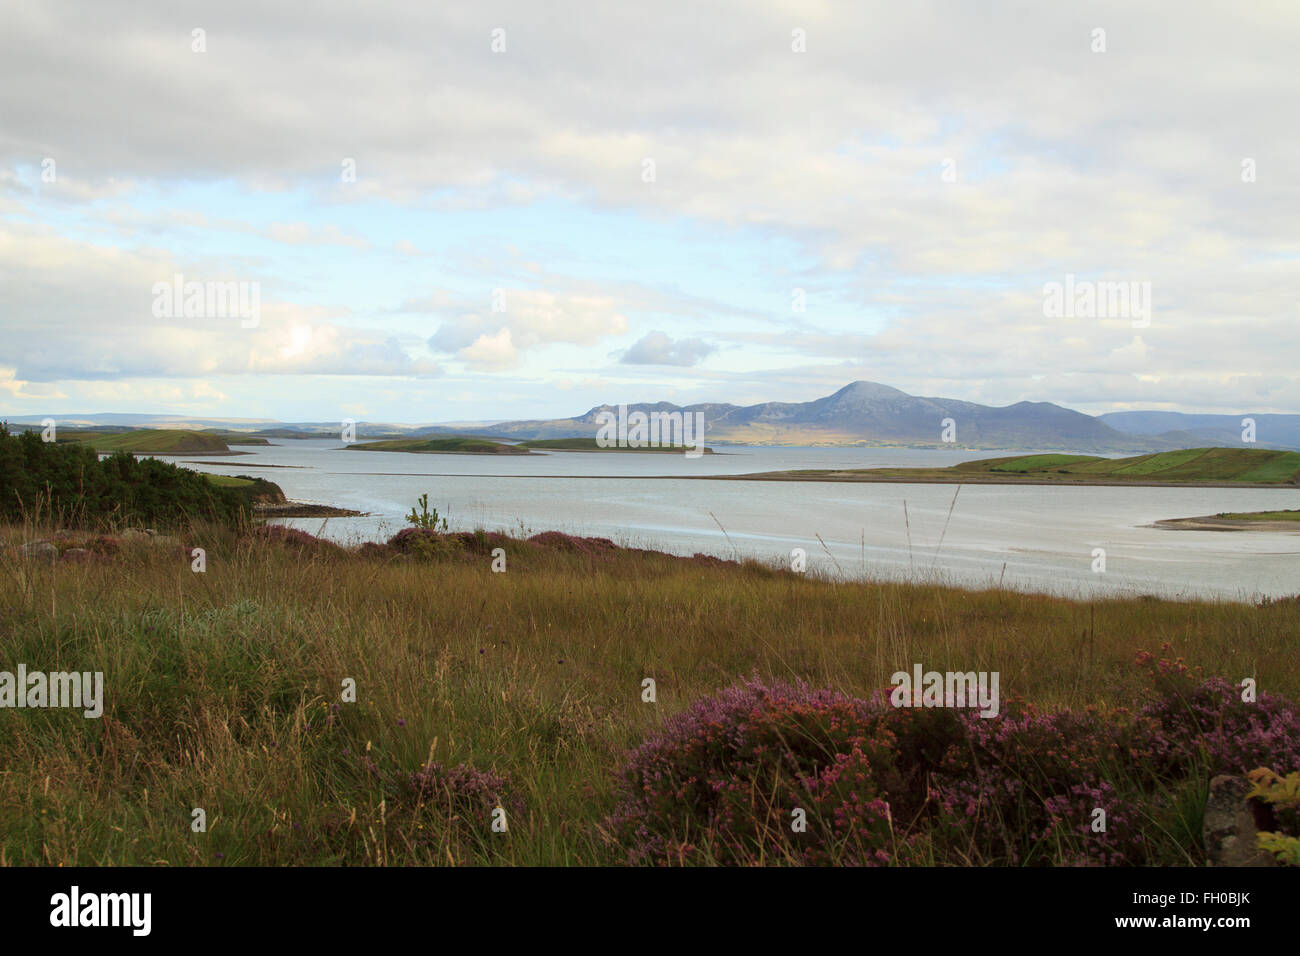 Achill - Heather, Sea and mountains - Stock Image